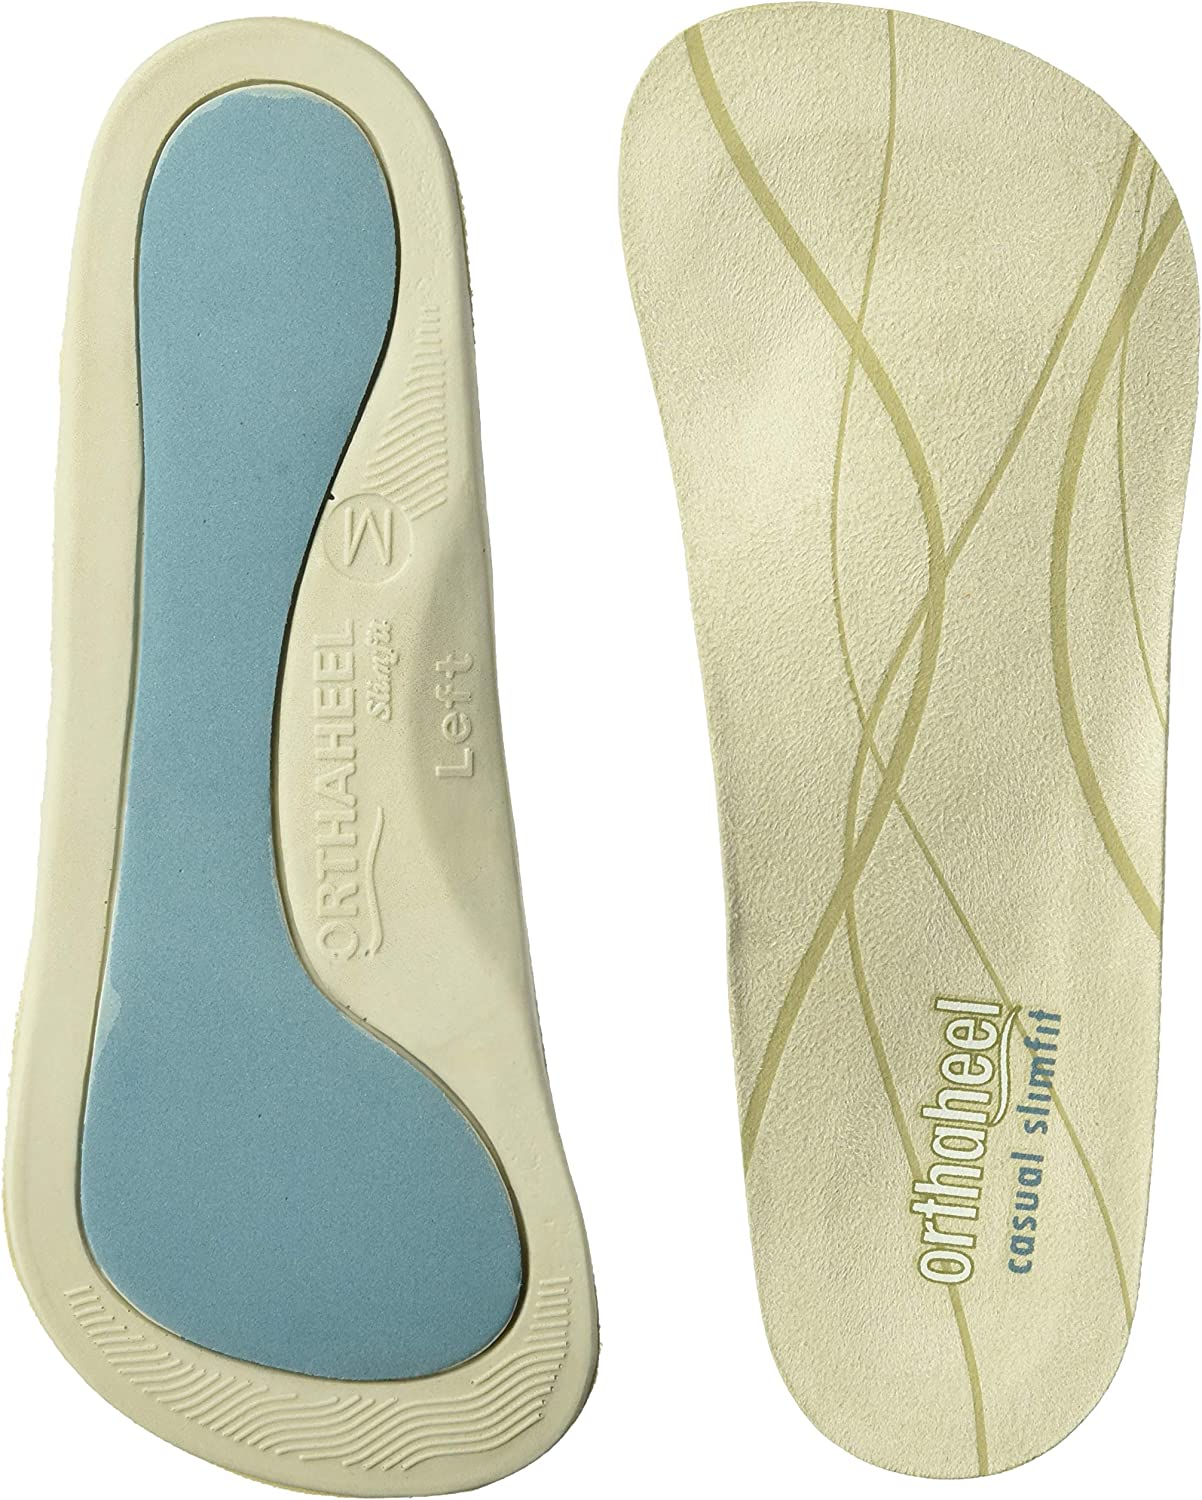 VIONIC ORTHAHEEL RELIEF FULL LENGTH ORTHOTIC INSOLES ALL SIZES NEW IN BOX